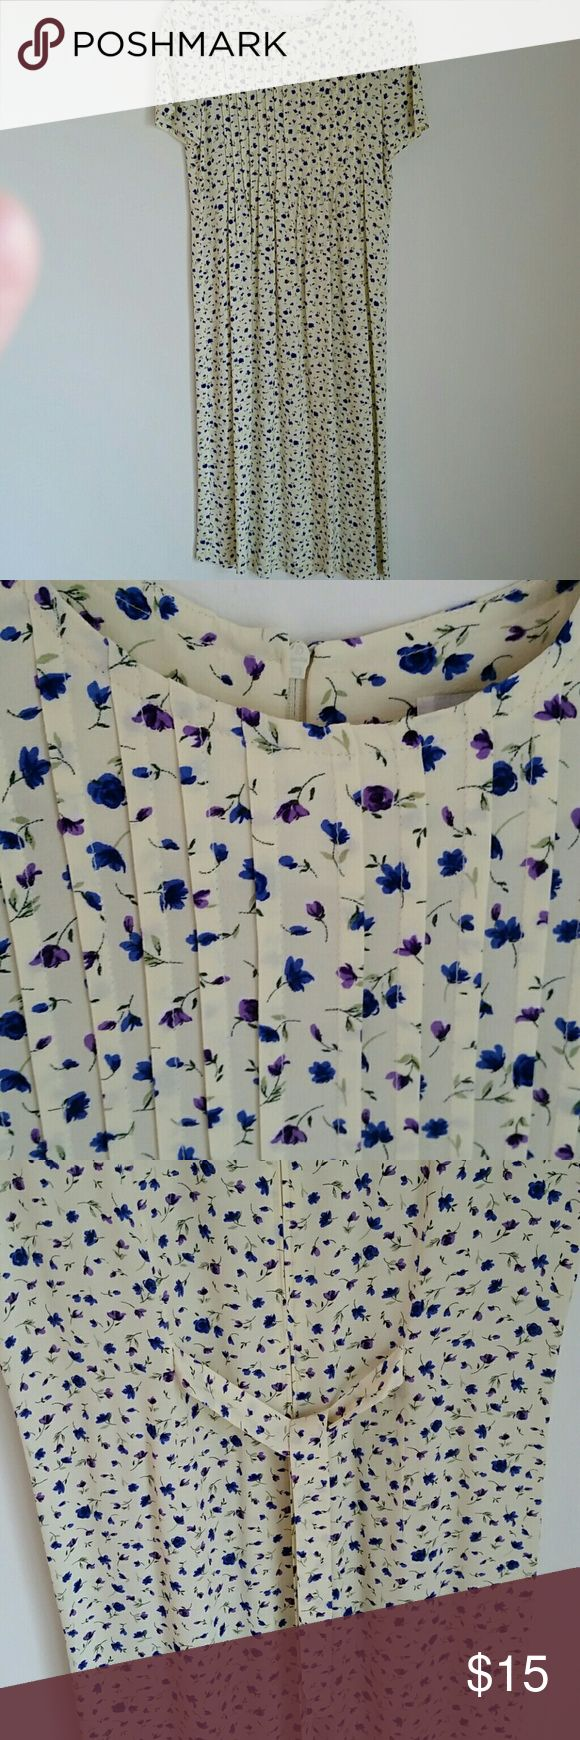 Light-weight Flowing Floral Dress 100% Rayon, Cap Sleeves, Pintucked Bodice, Zipper and Tie in Back, Dry Clean - Cream/Purple/Blue/Green K Petite  Dresses Midi